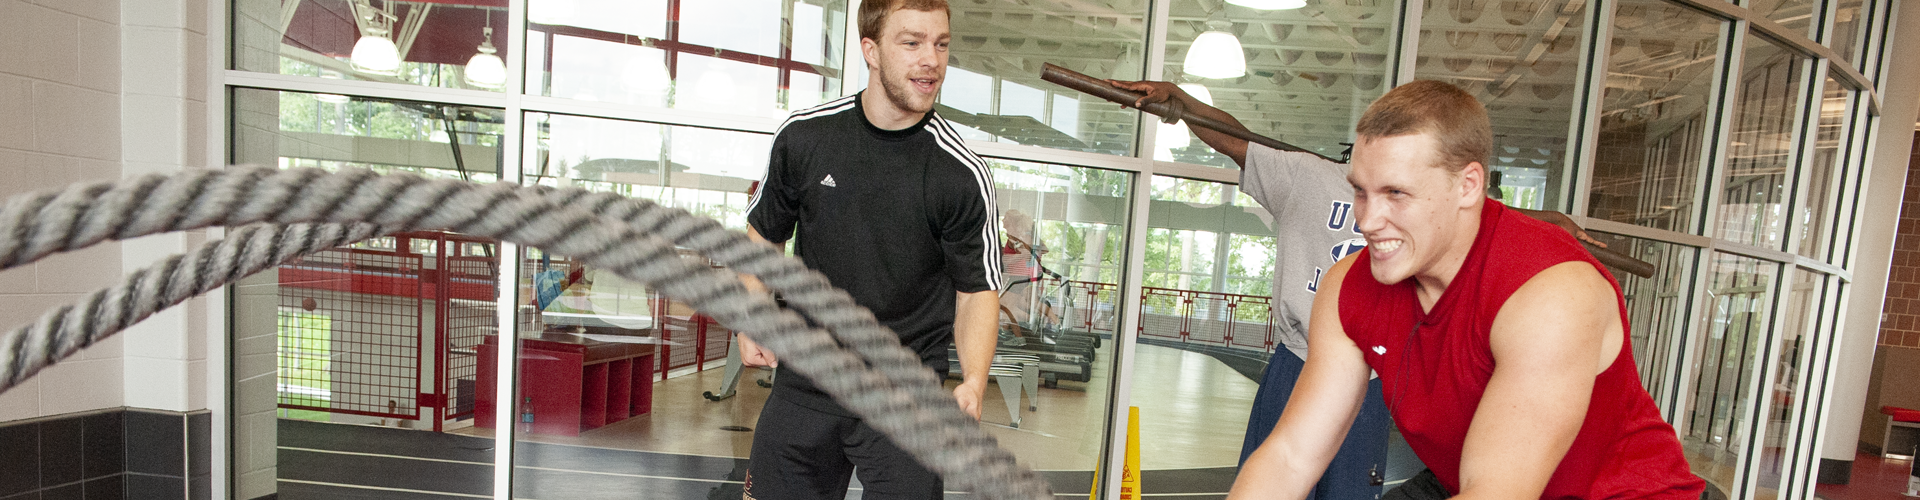 Student working out with ropes as a trainer encourages him